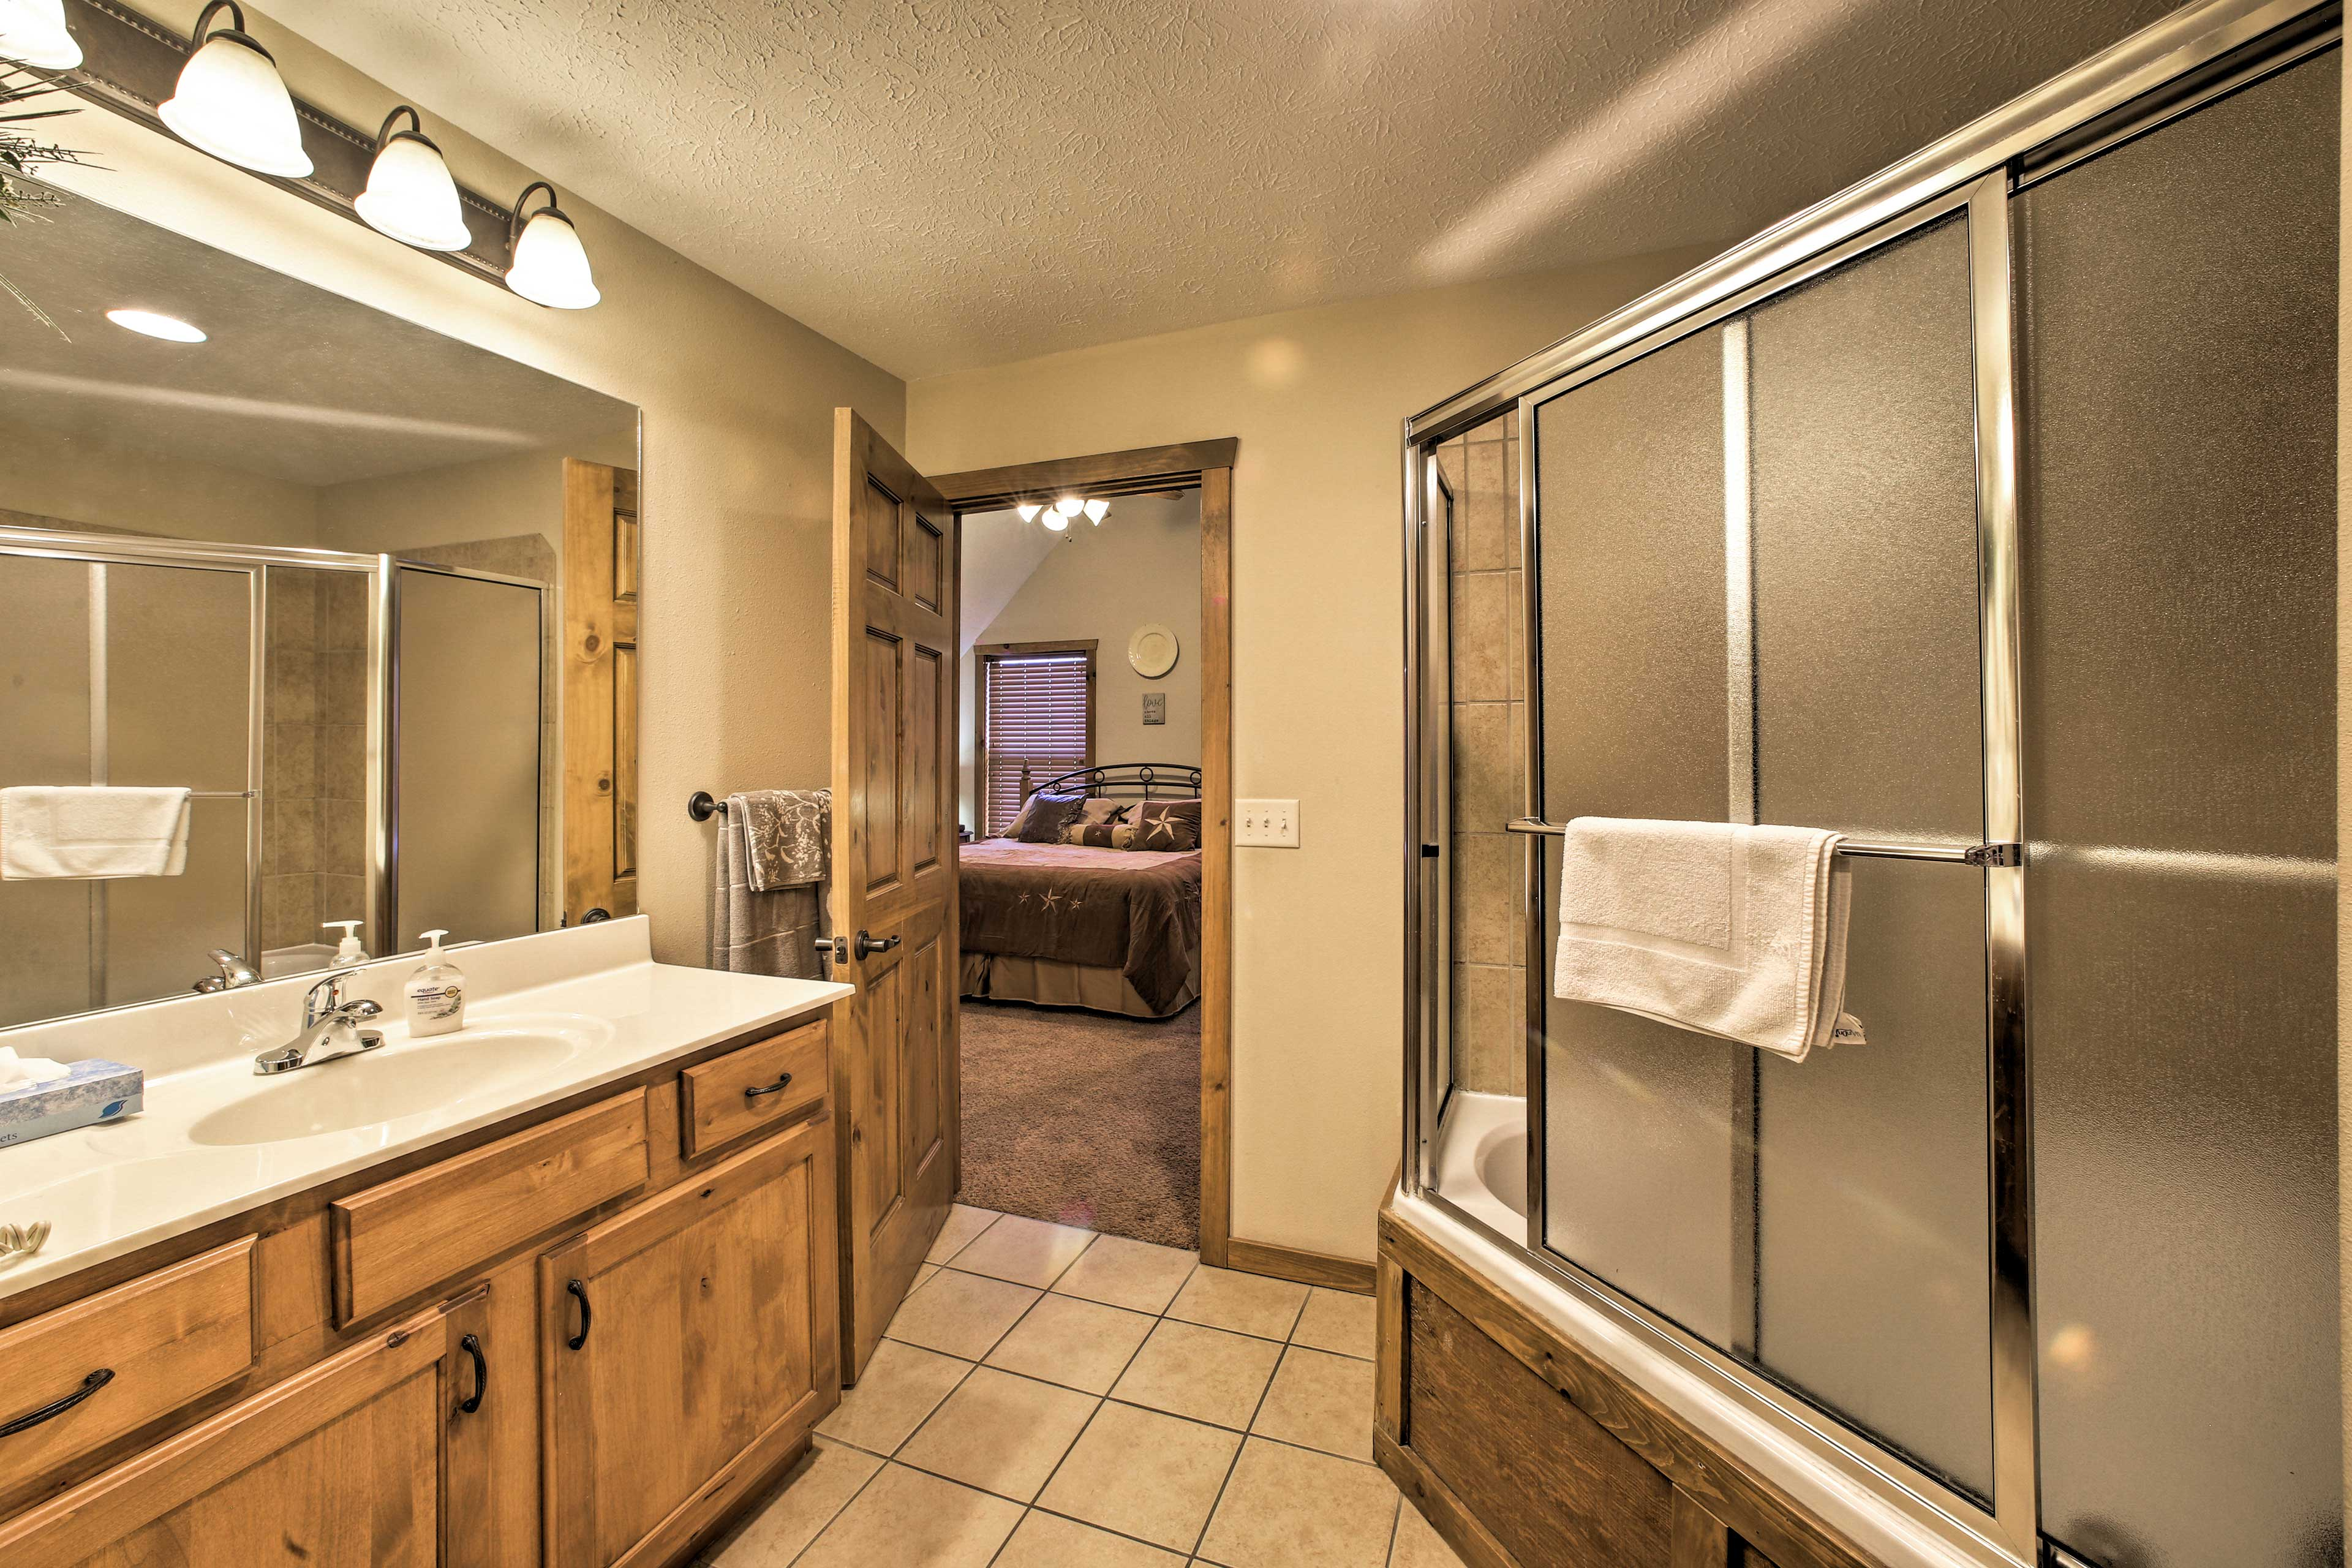 En-suite bathrooms make it easy to stay fresh & pampered all vacation long.